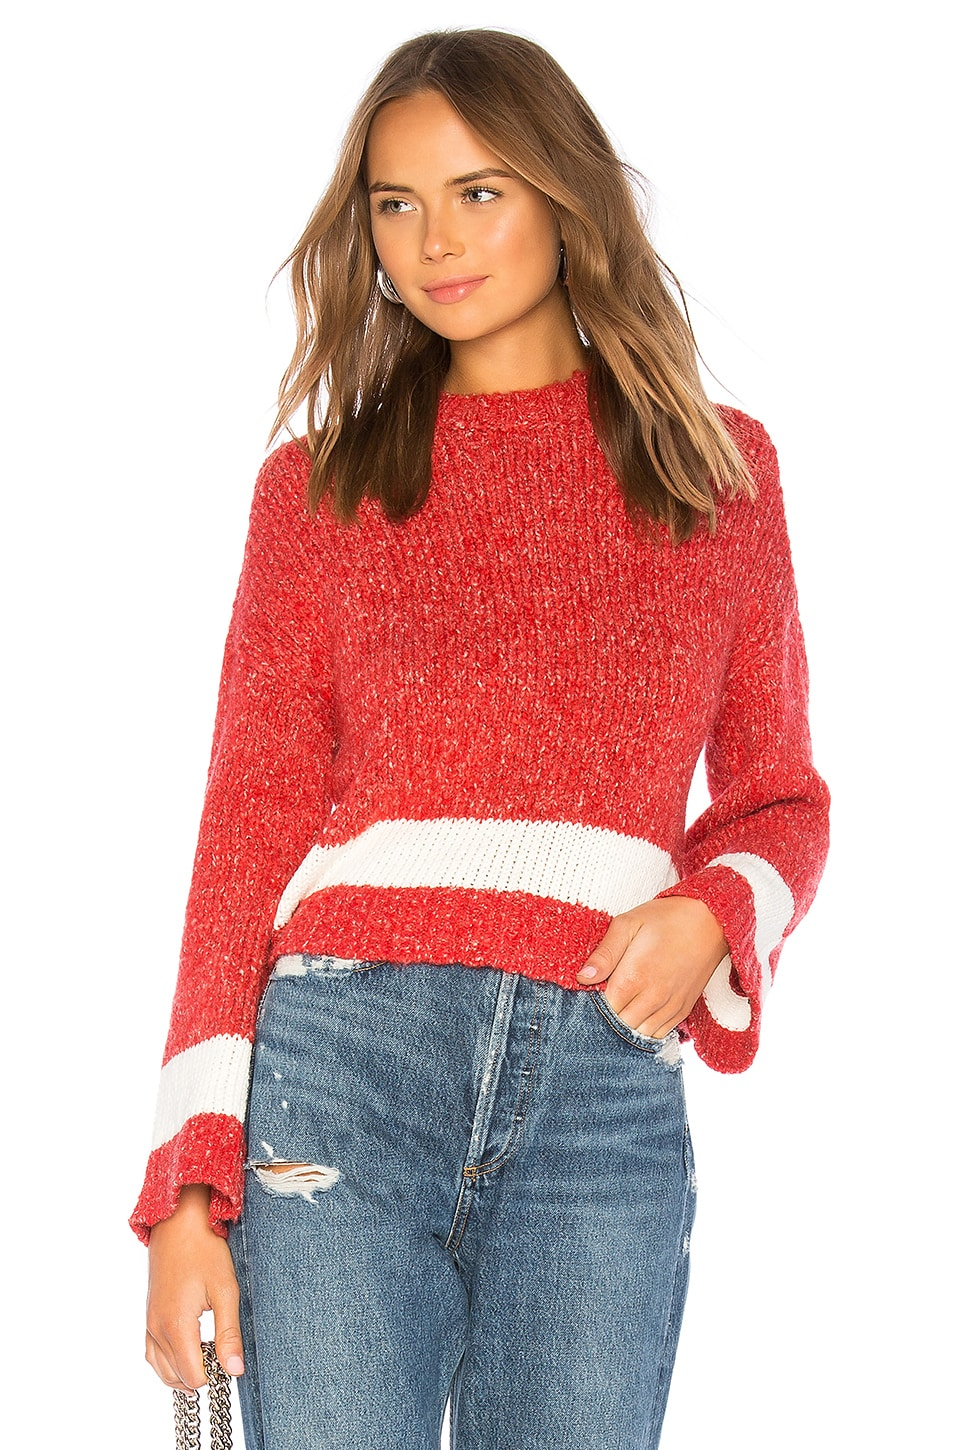 Lovers + Friends Kirkland Sweater in Red & White